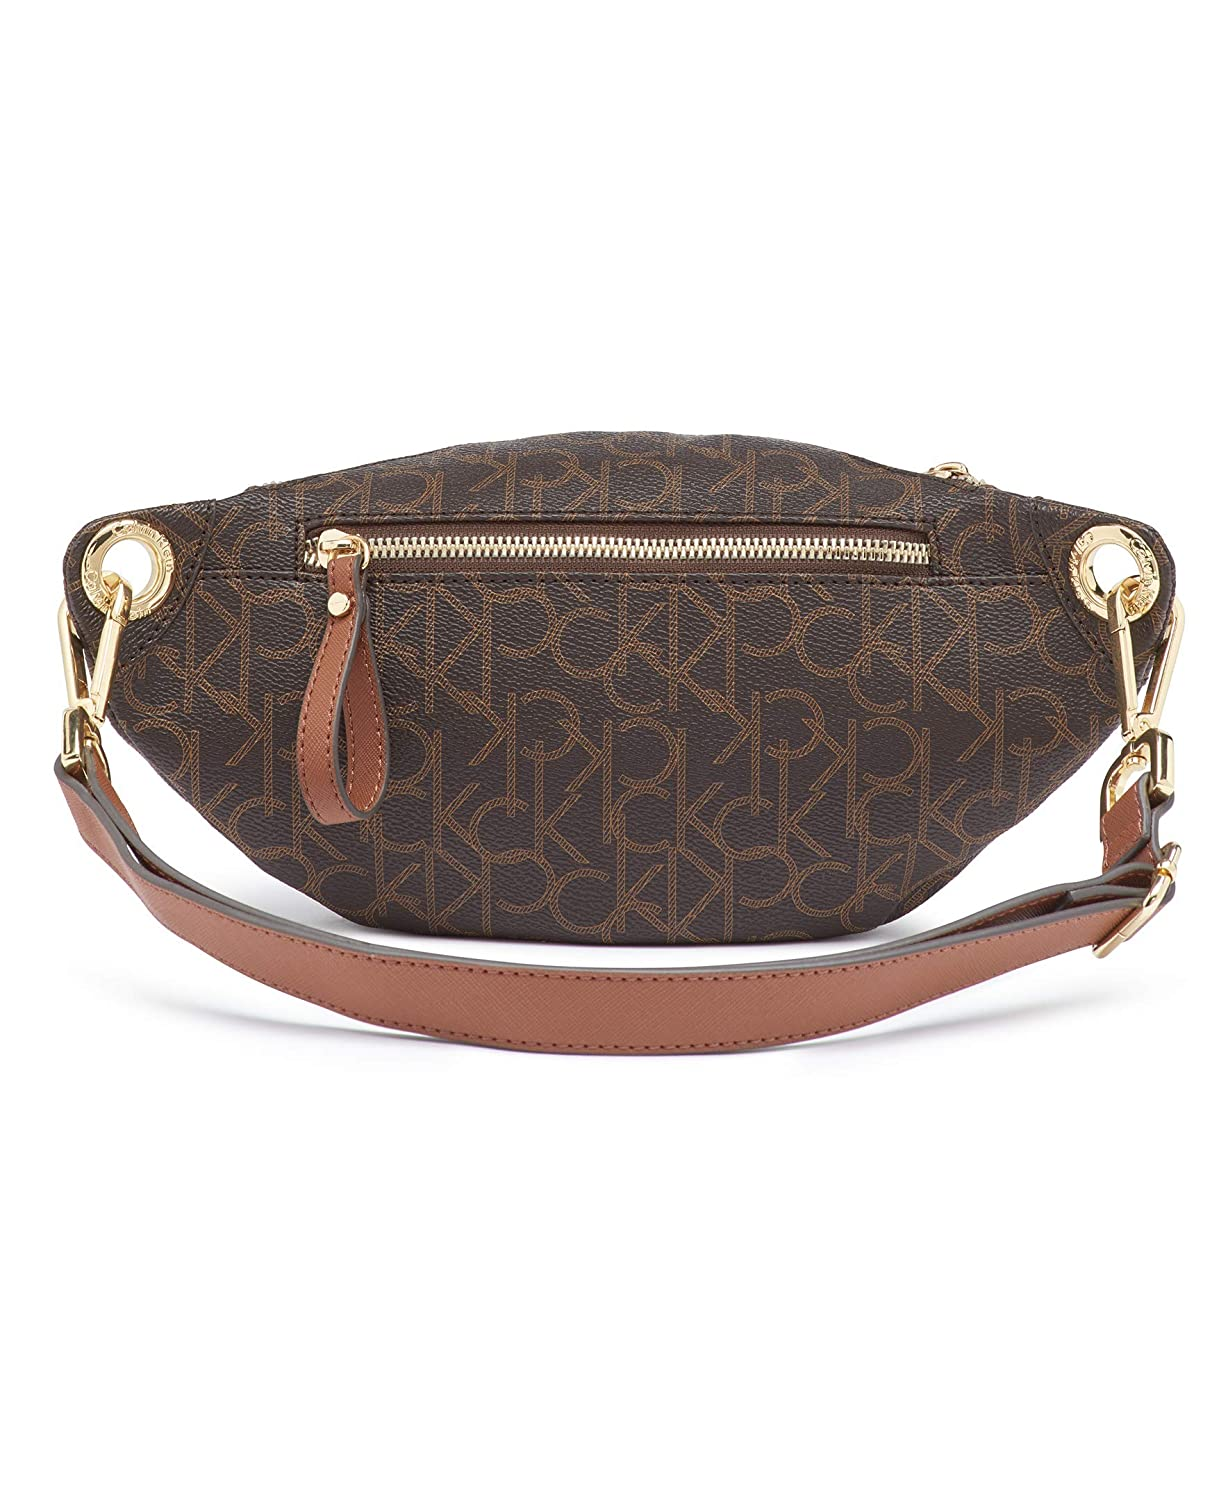 8f369050c8 Amazon.com: Calvin Klein Sonoma Signature Monogram Belt Bag,  brown/khaki/luggage saffiano: Clothing